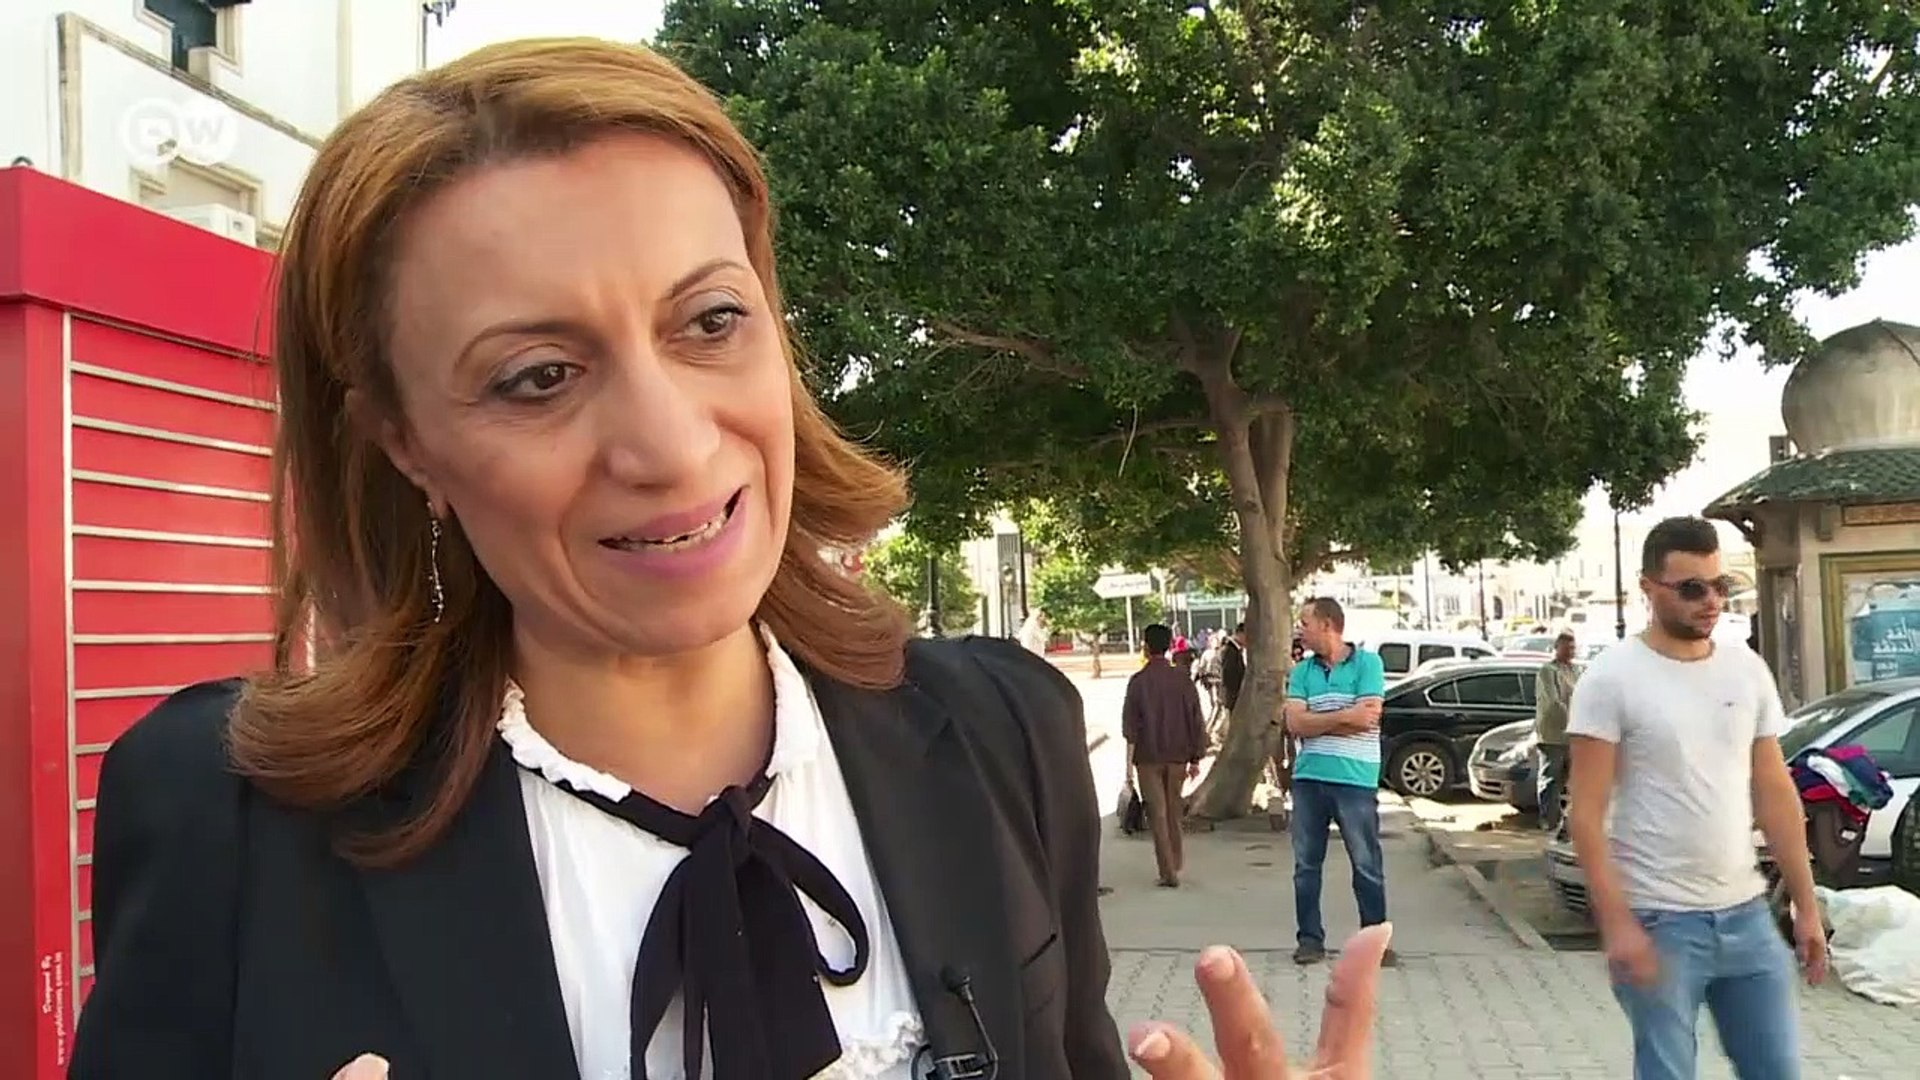 The first female mayor of Tunis | DW Documentary (Arab world documentary)